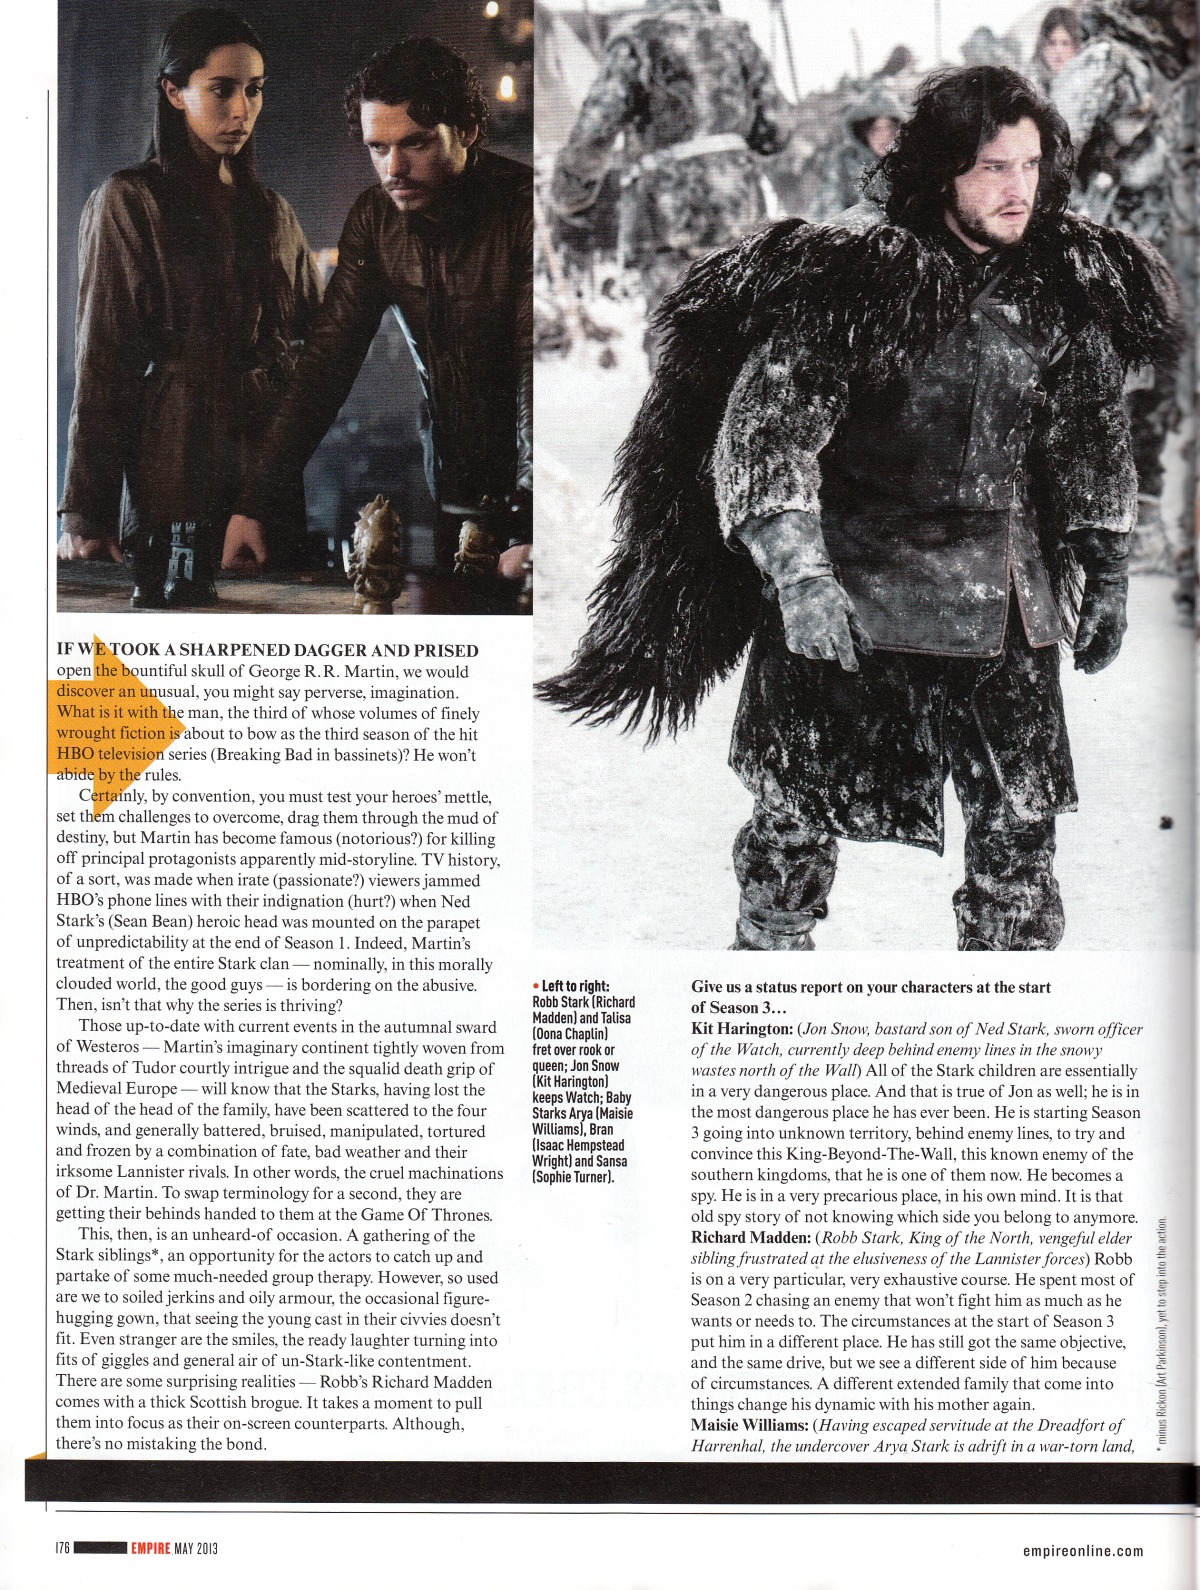 Game of Thrones interview with the Starks